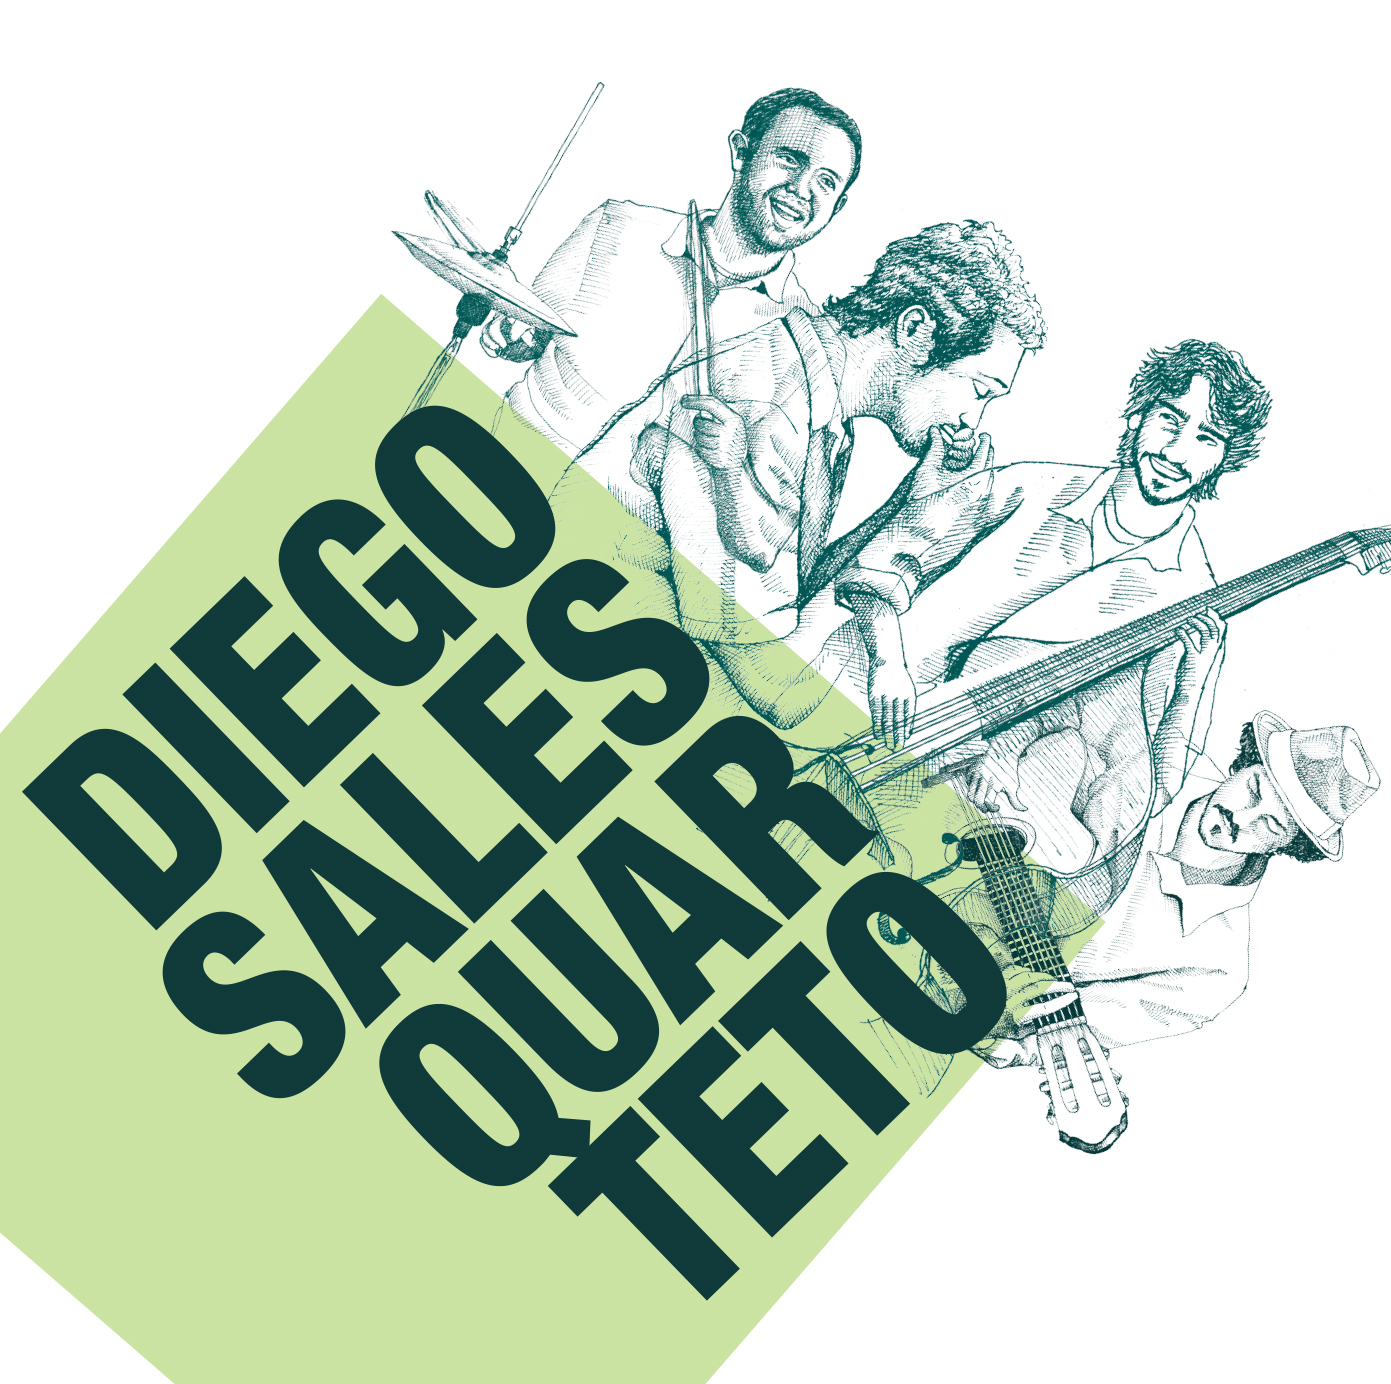 Diego Sales Quartet